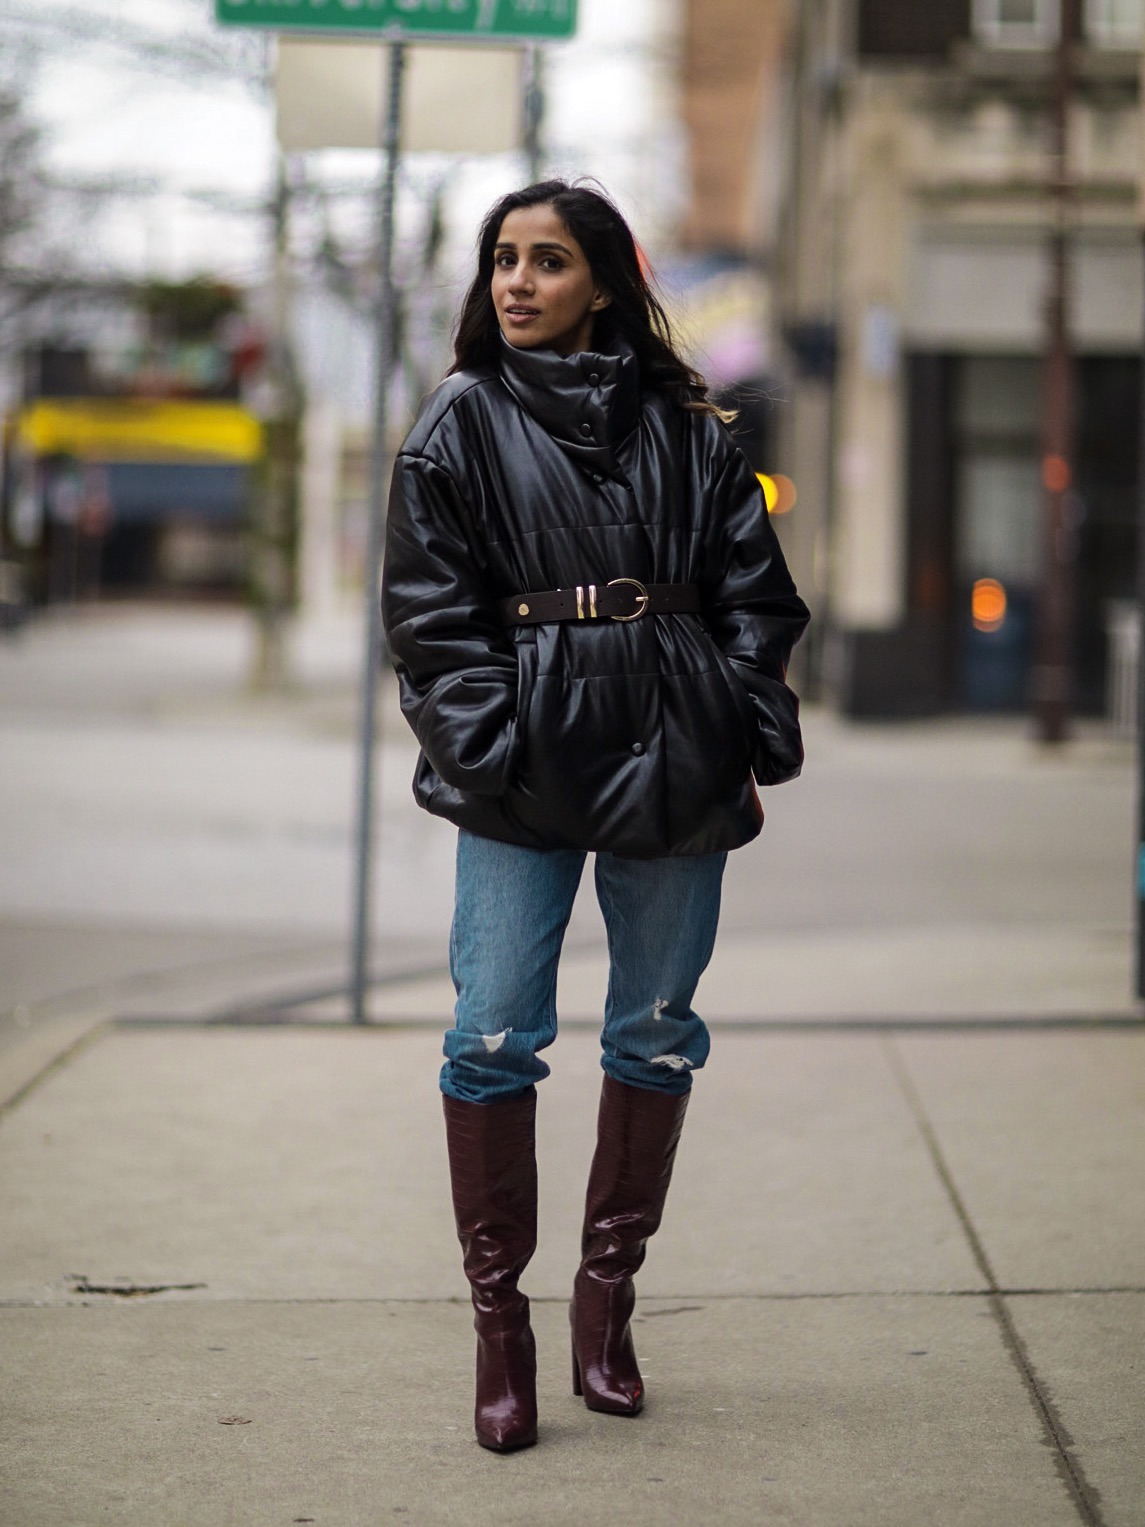 My Top Trending Boots this Winter knee high structured boots 2020 combat boots rain boots trending faiza inam 1